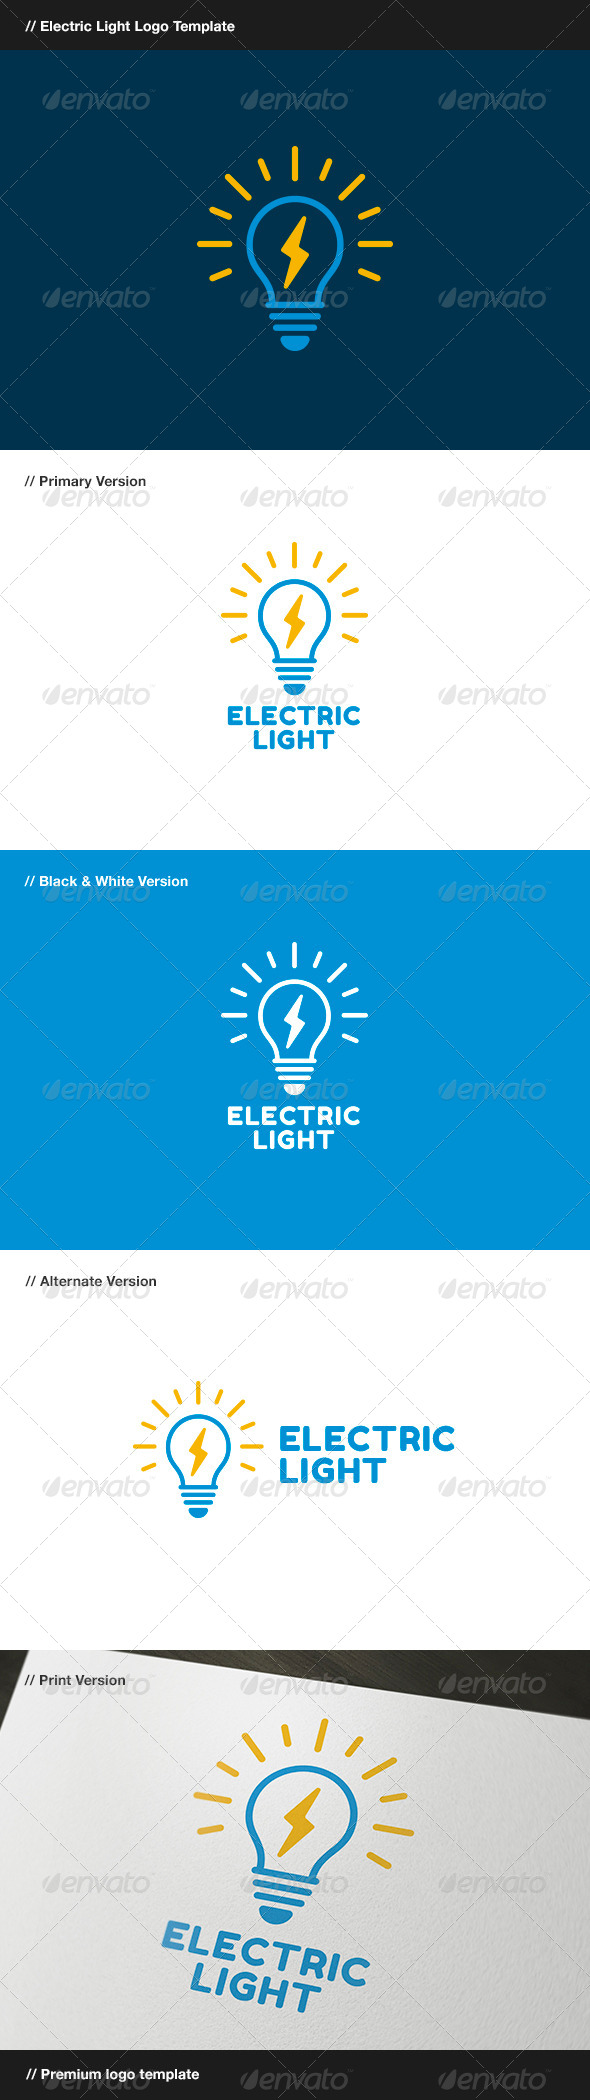 Electric Light